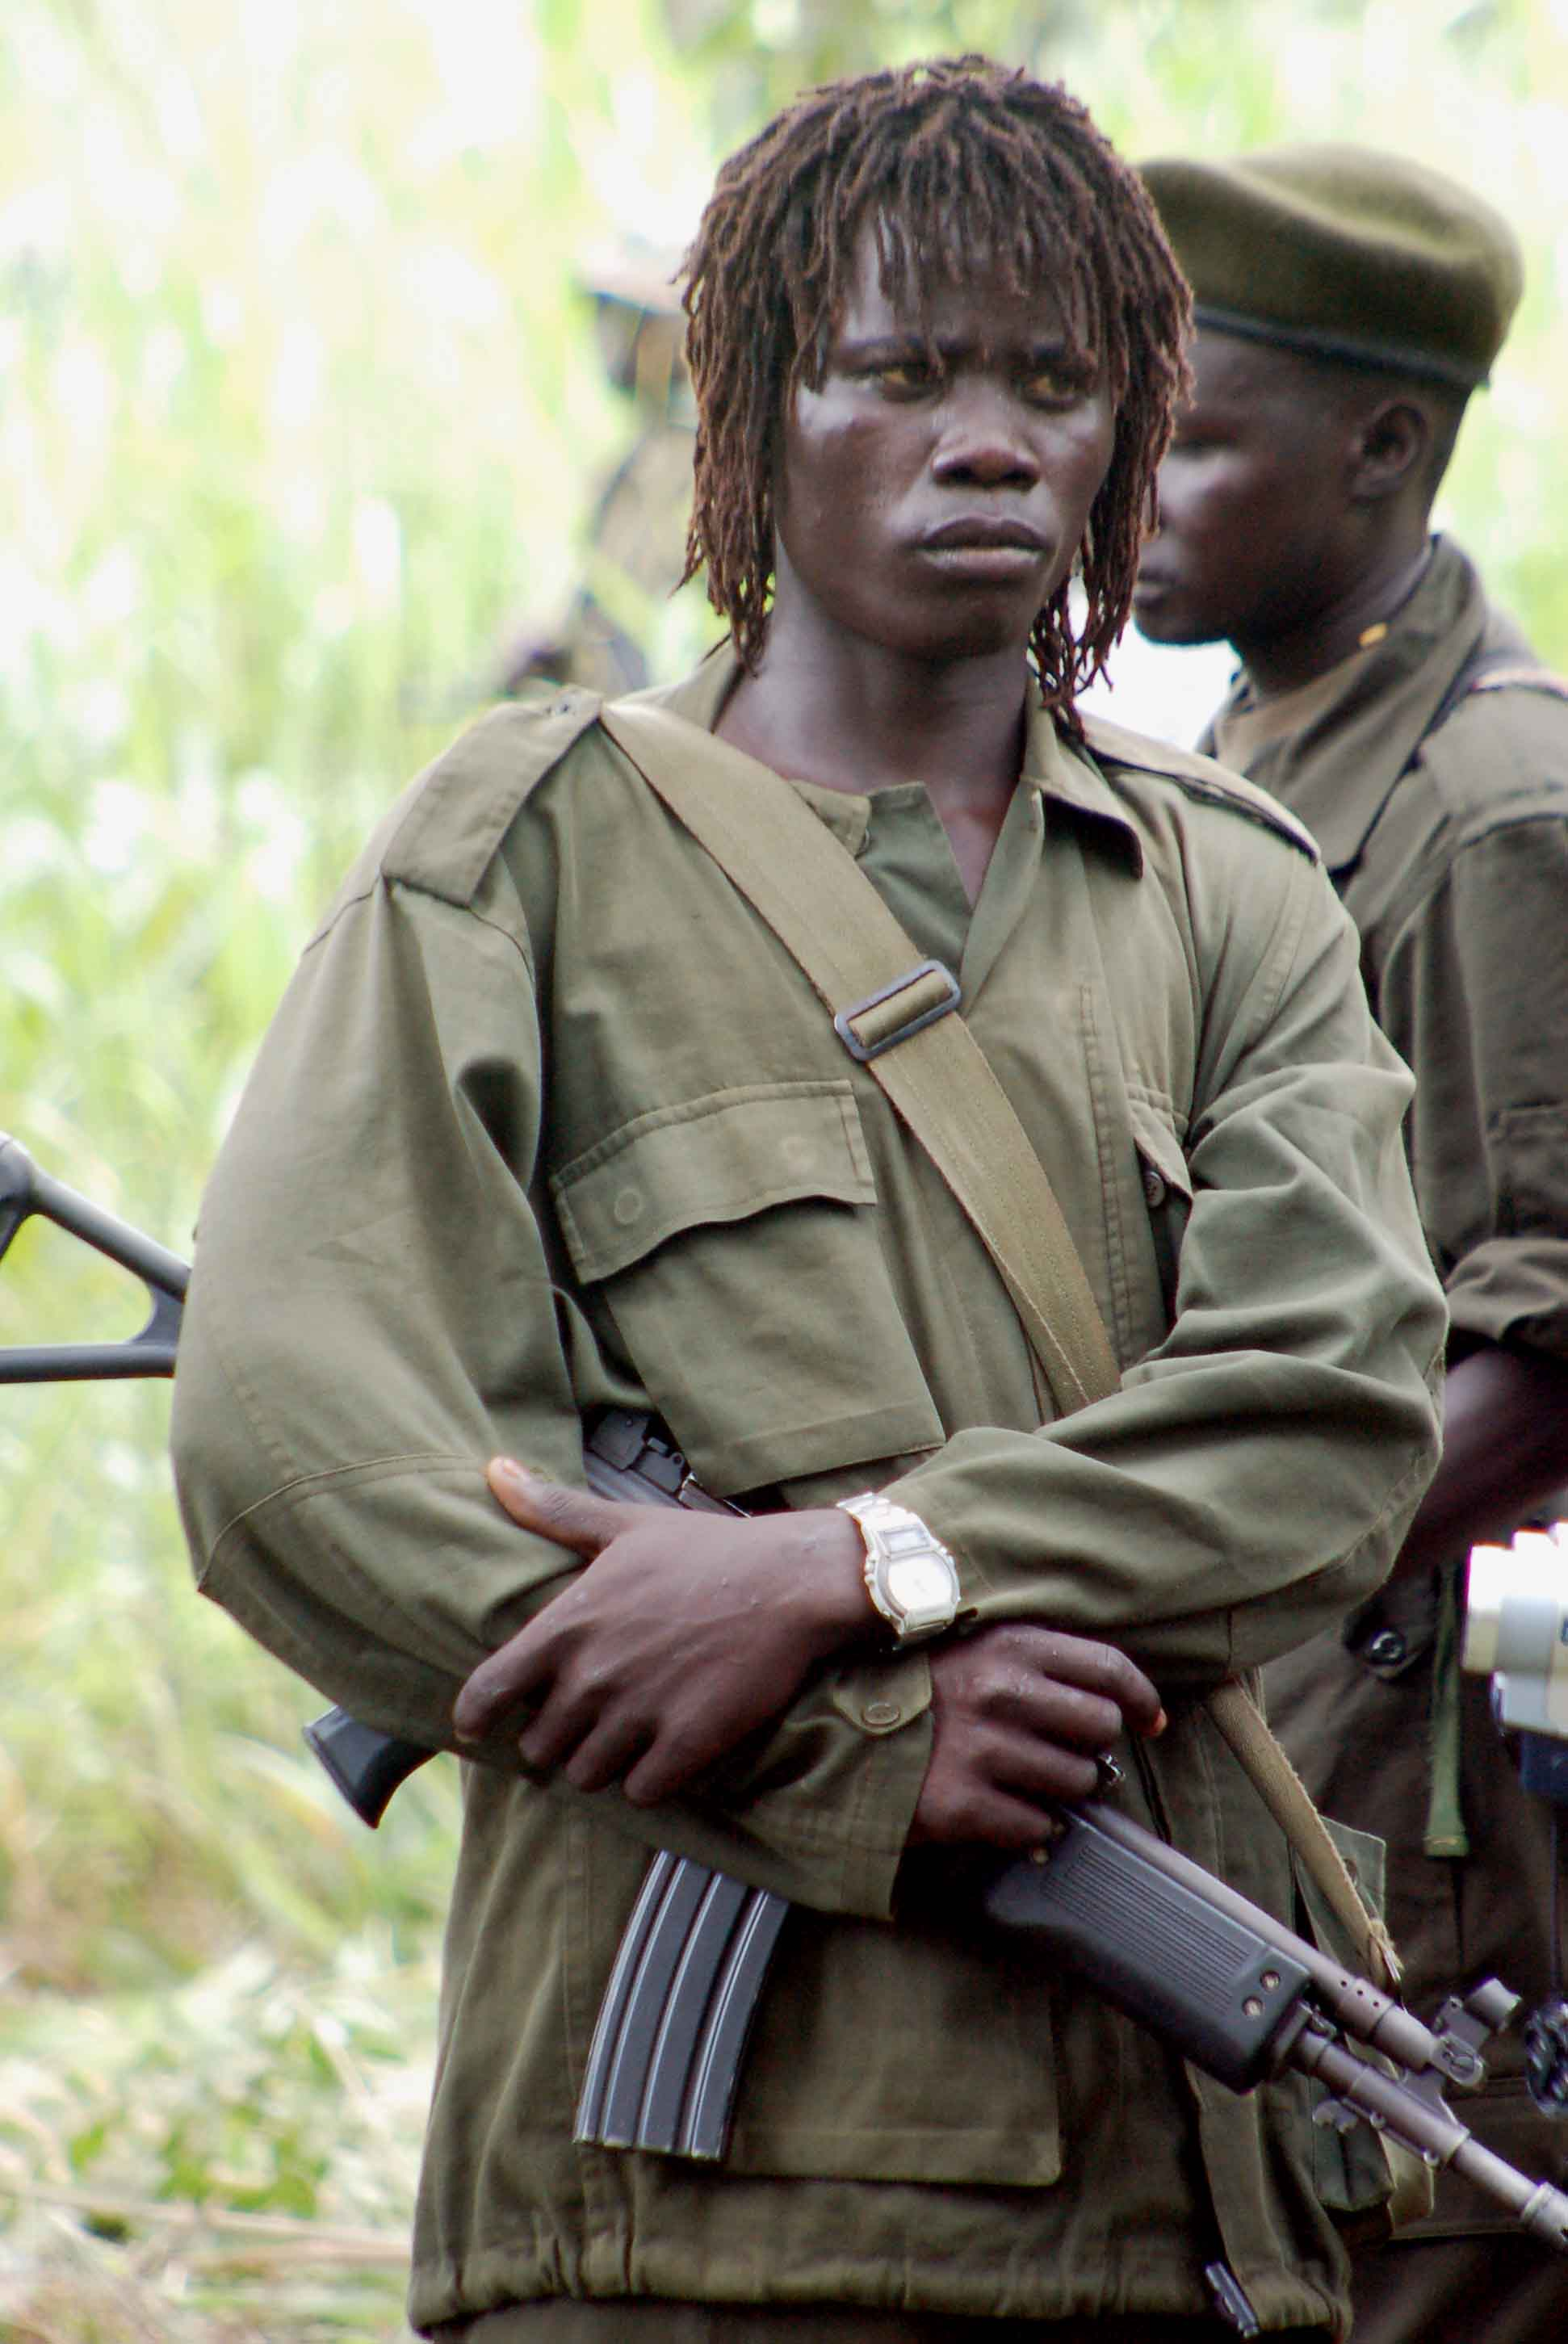 http://www.enoughproject.org/files/LRA%20fighter%20Nabanga,%20SSudan%20MattBrown_2.jpg